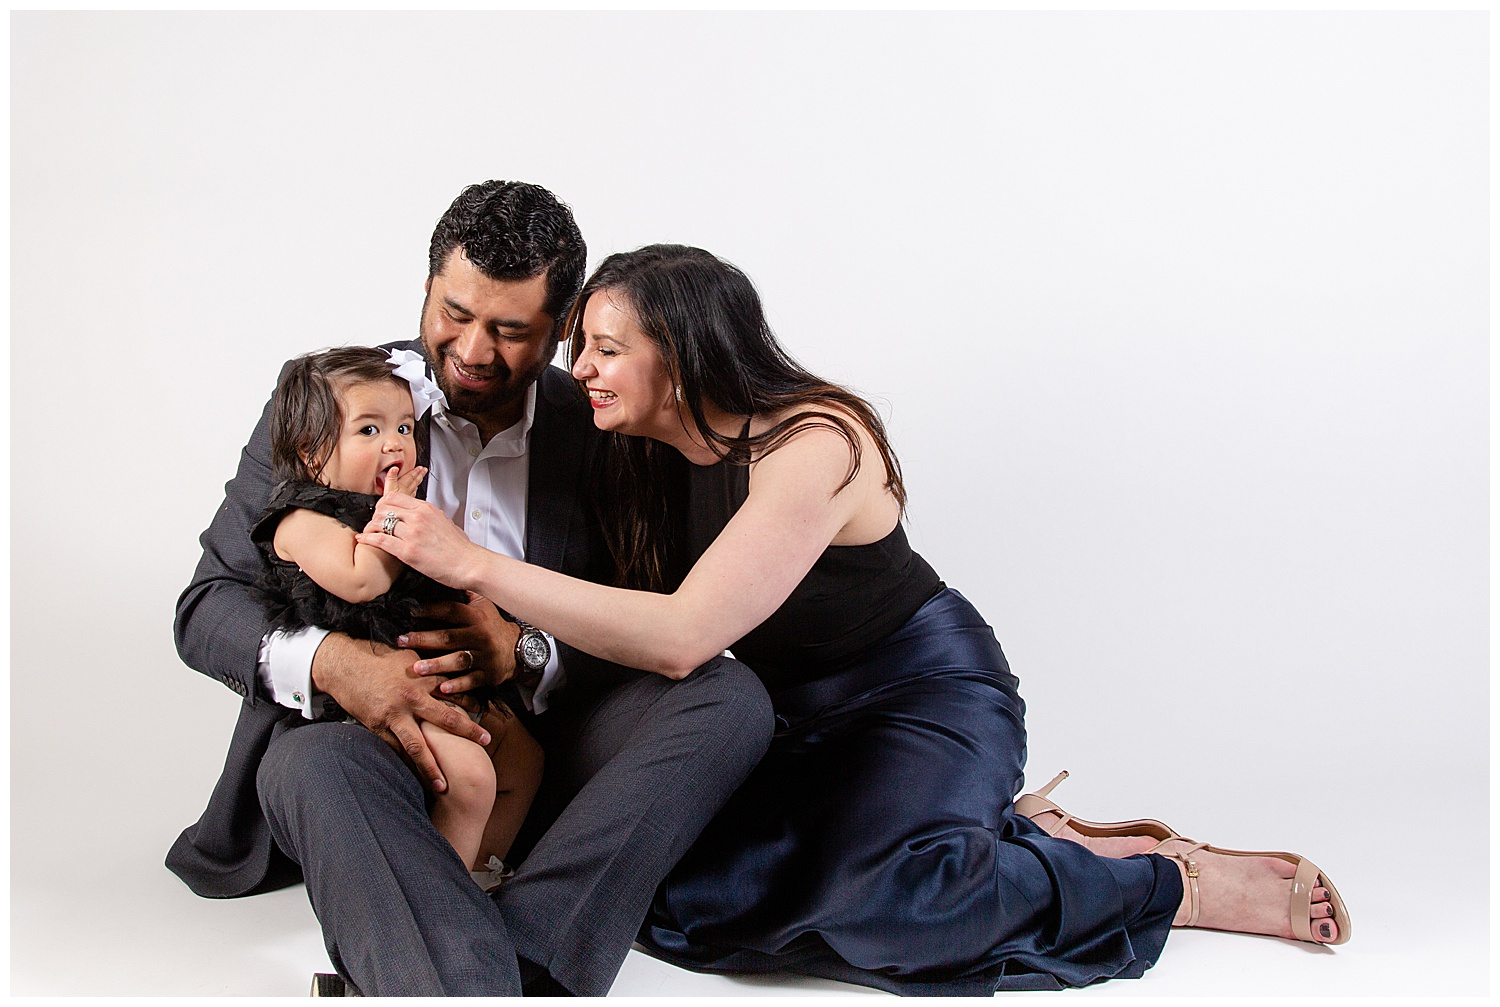 emily-belson-photography-dc-family-photographer-04.jpg